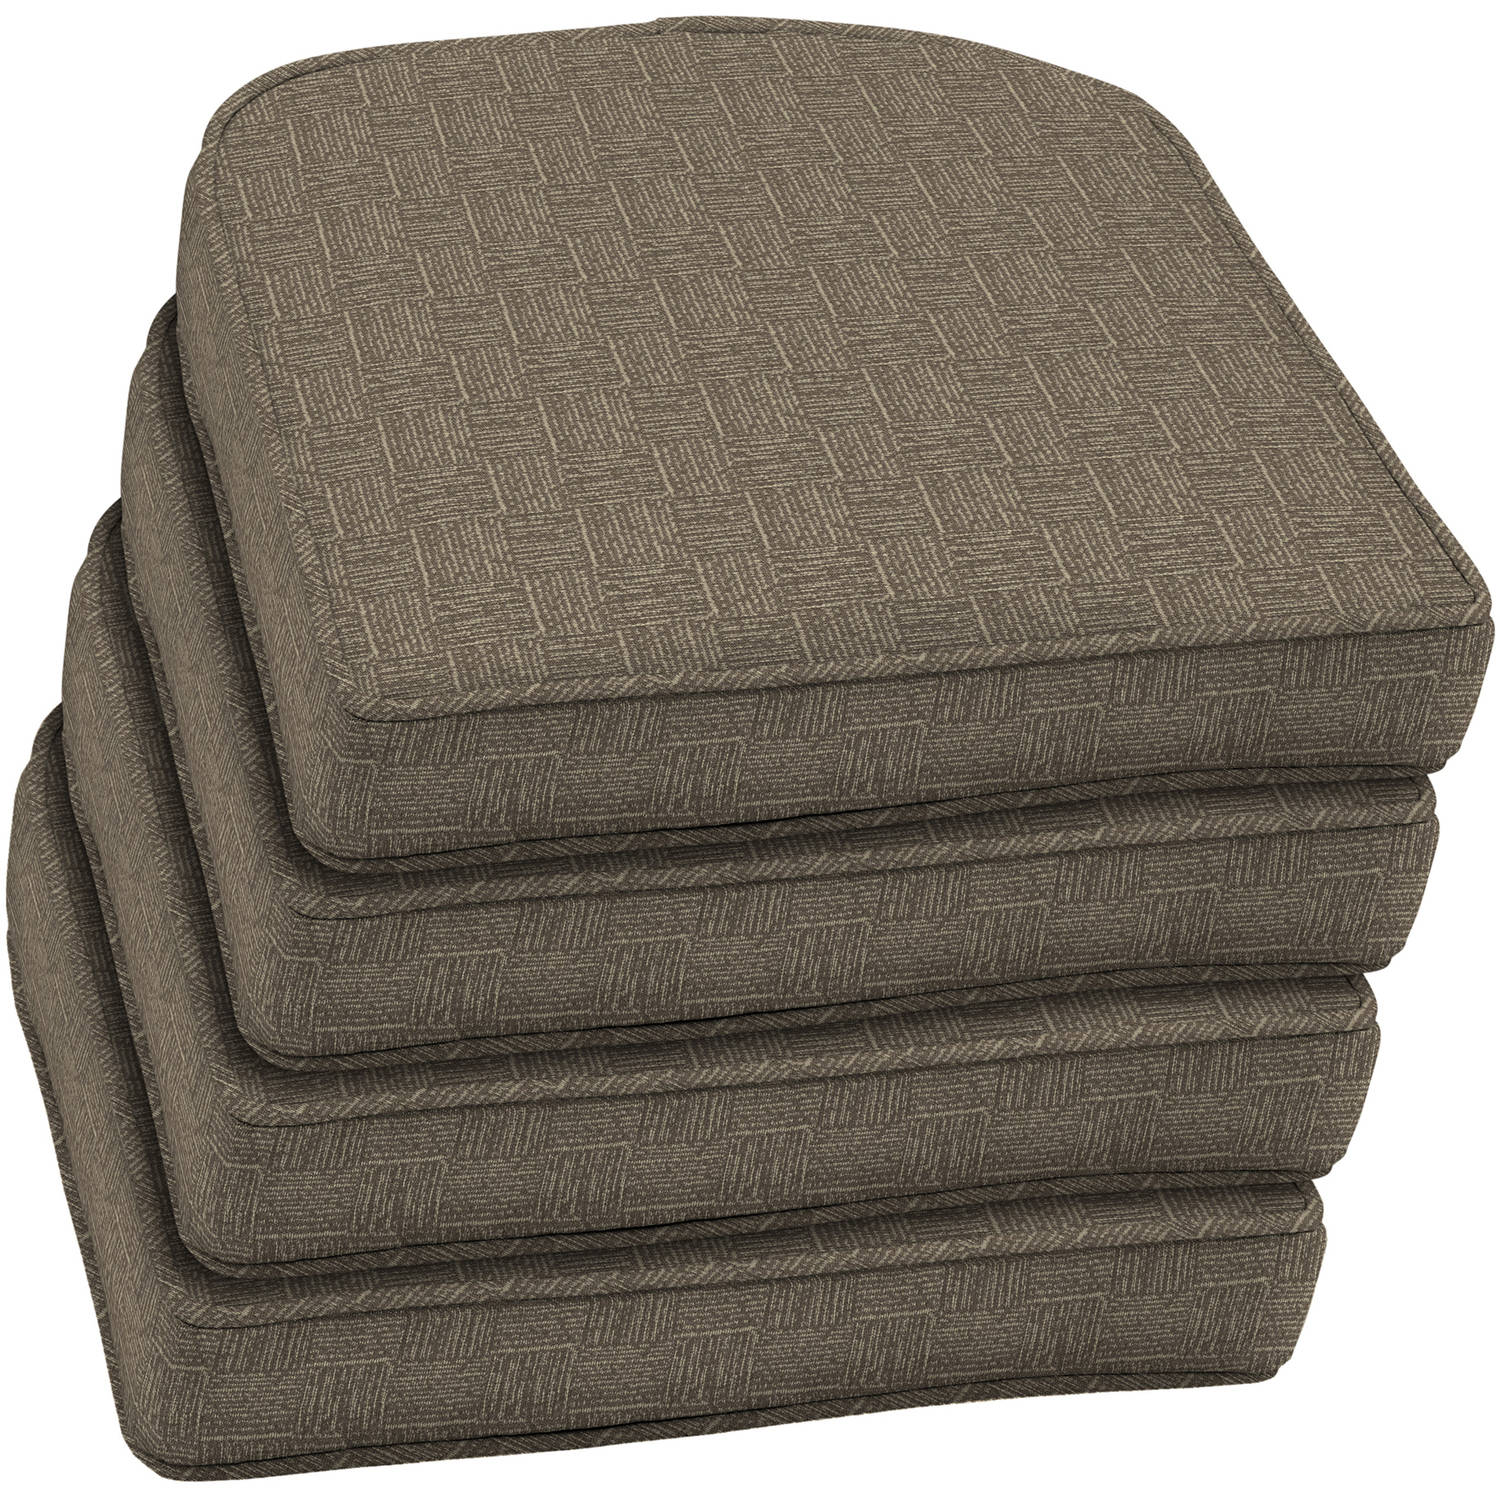 Arden Outdoors Wicker Seat Cushion with Welt, Set of 4